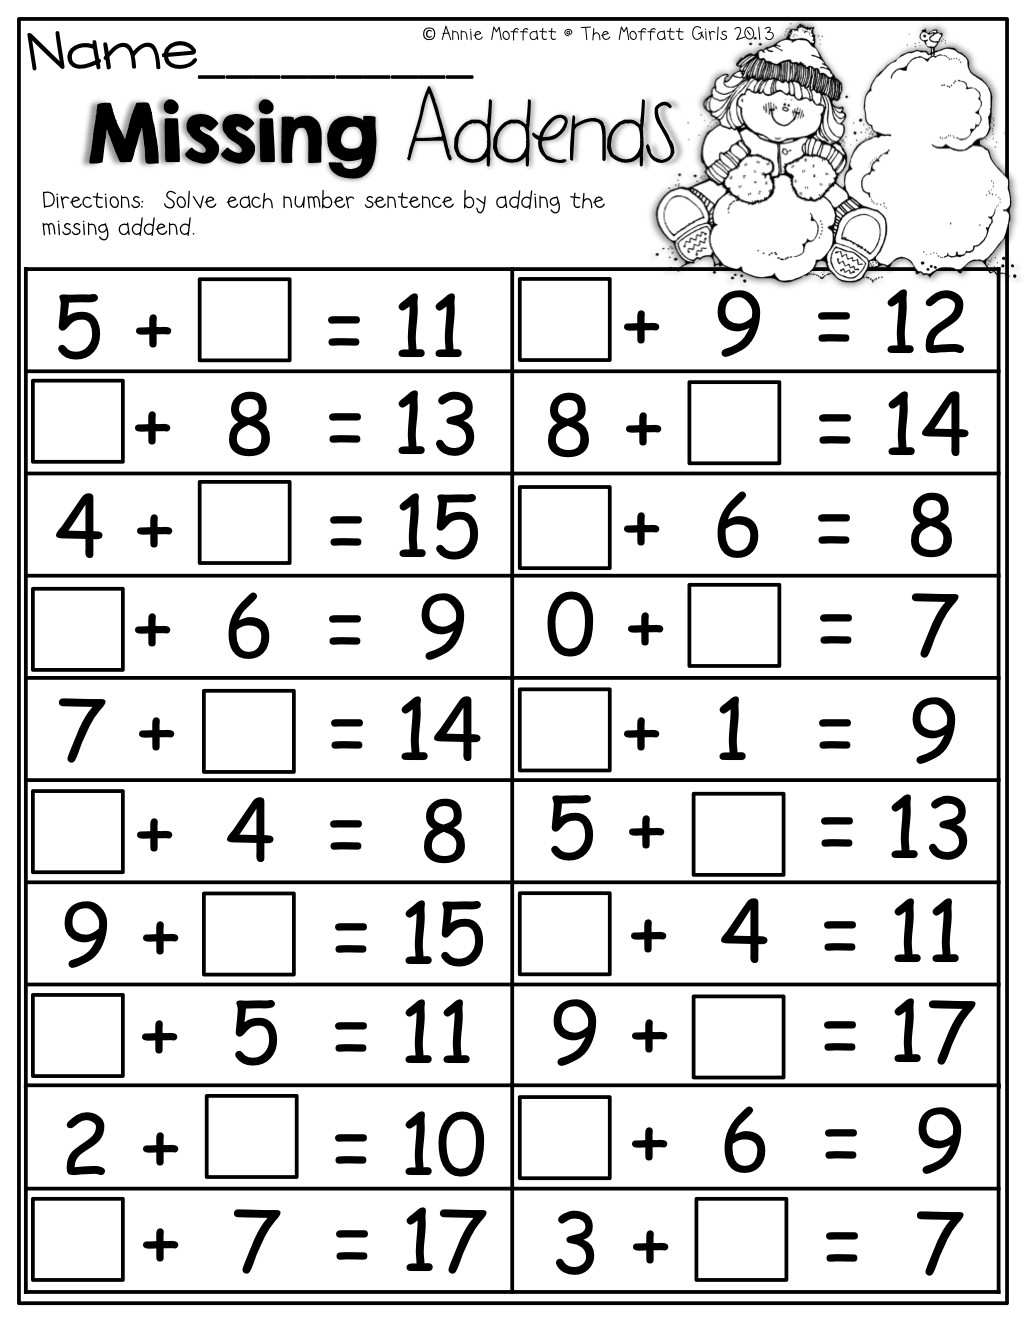 Missing Addend Worksheets First Grade Math Worksheets with Missing Addends